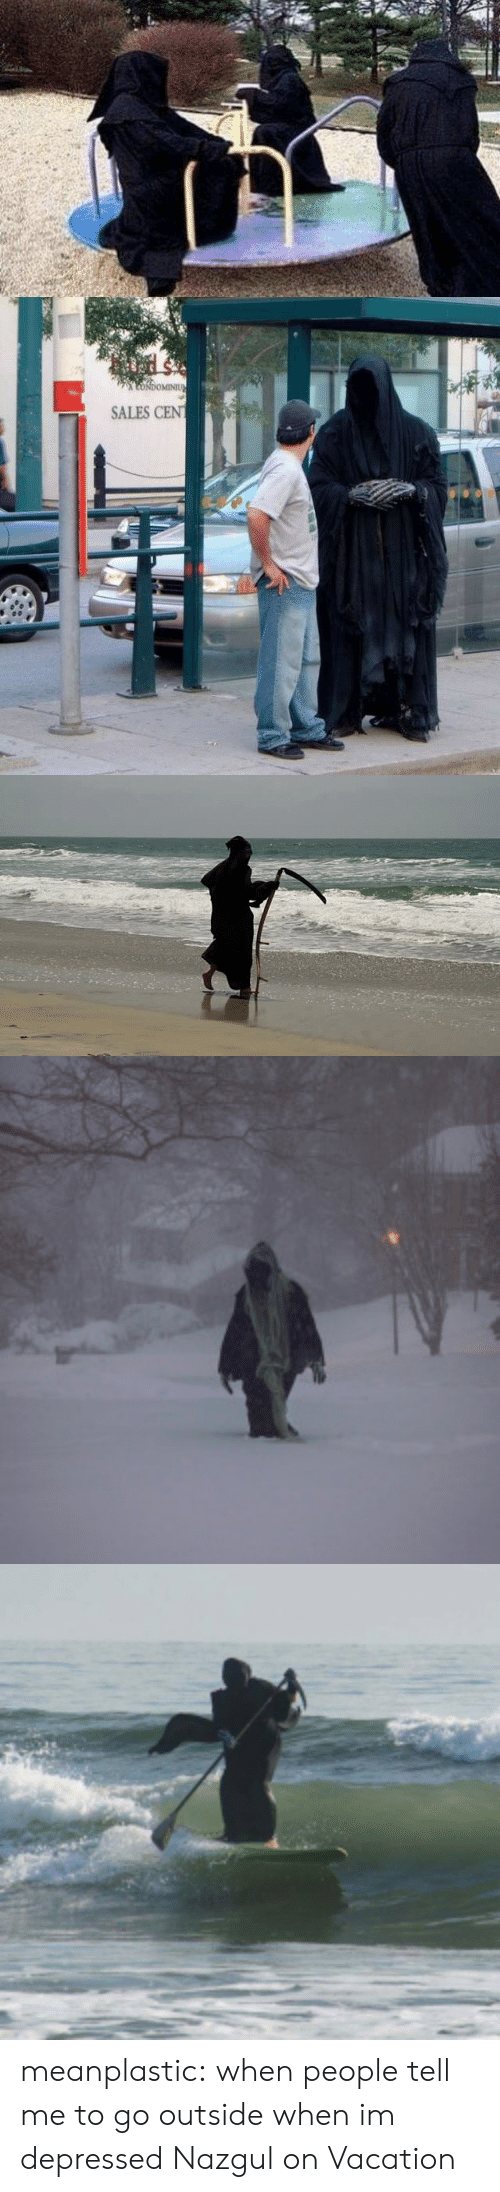 go outside: CoNdoMINIU  SALES CEN meanplastic:  when people tell me to go outside when im depressed  Nazgul on Vacation